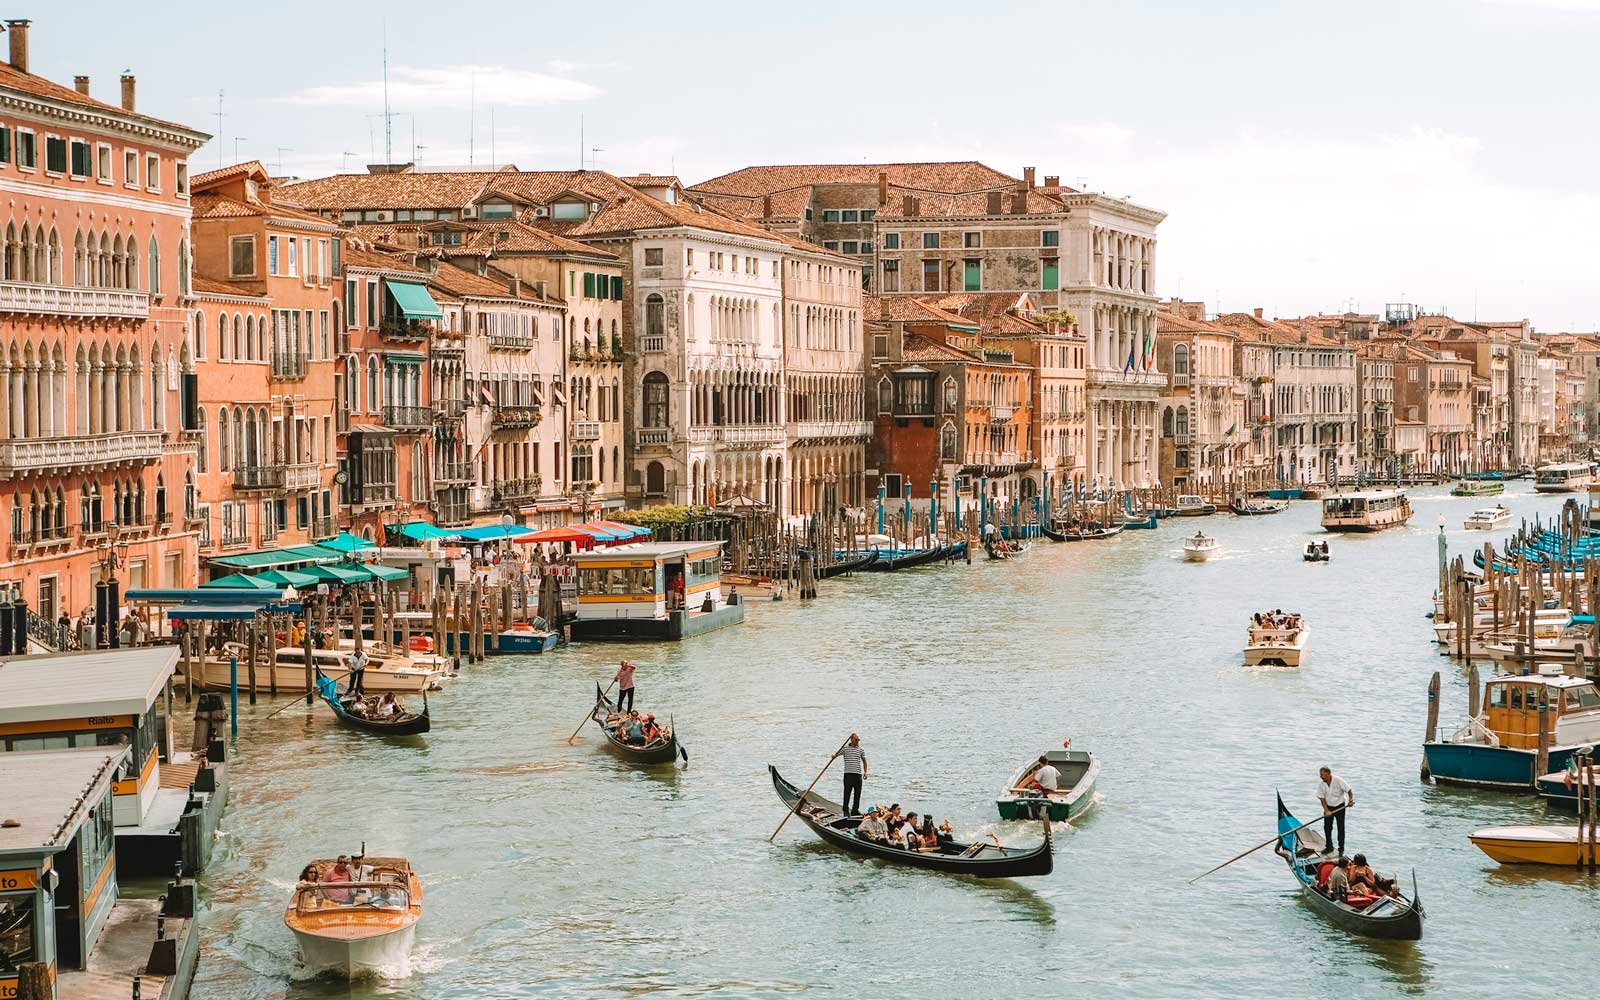 Sightseeing in Venice Italy during Summer.